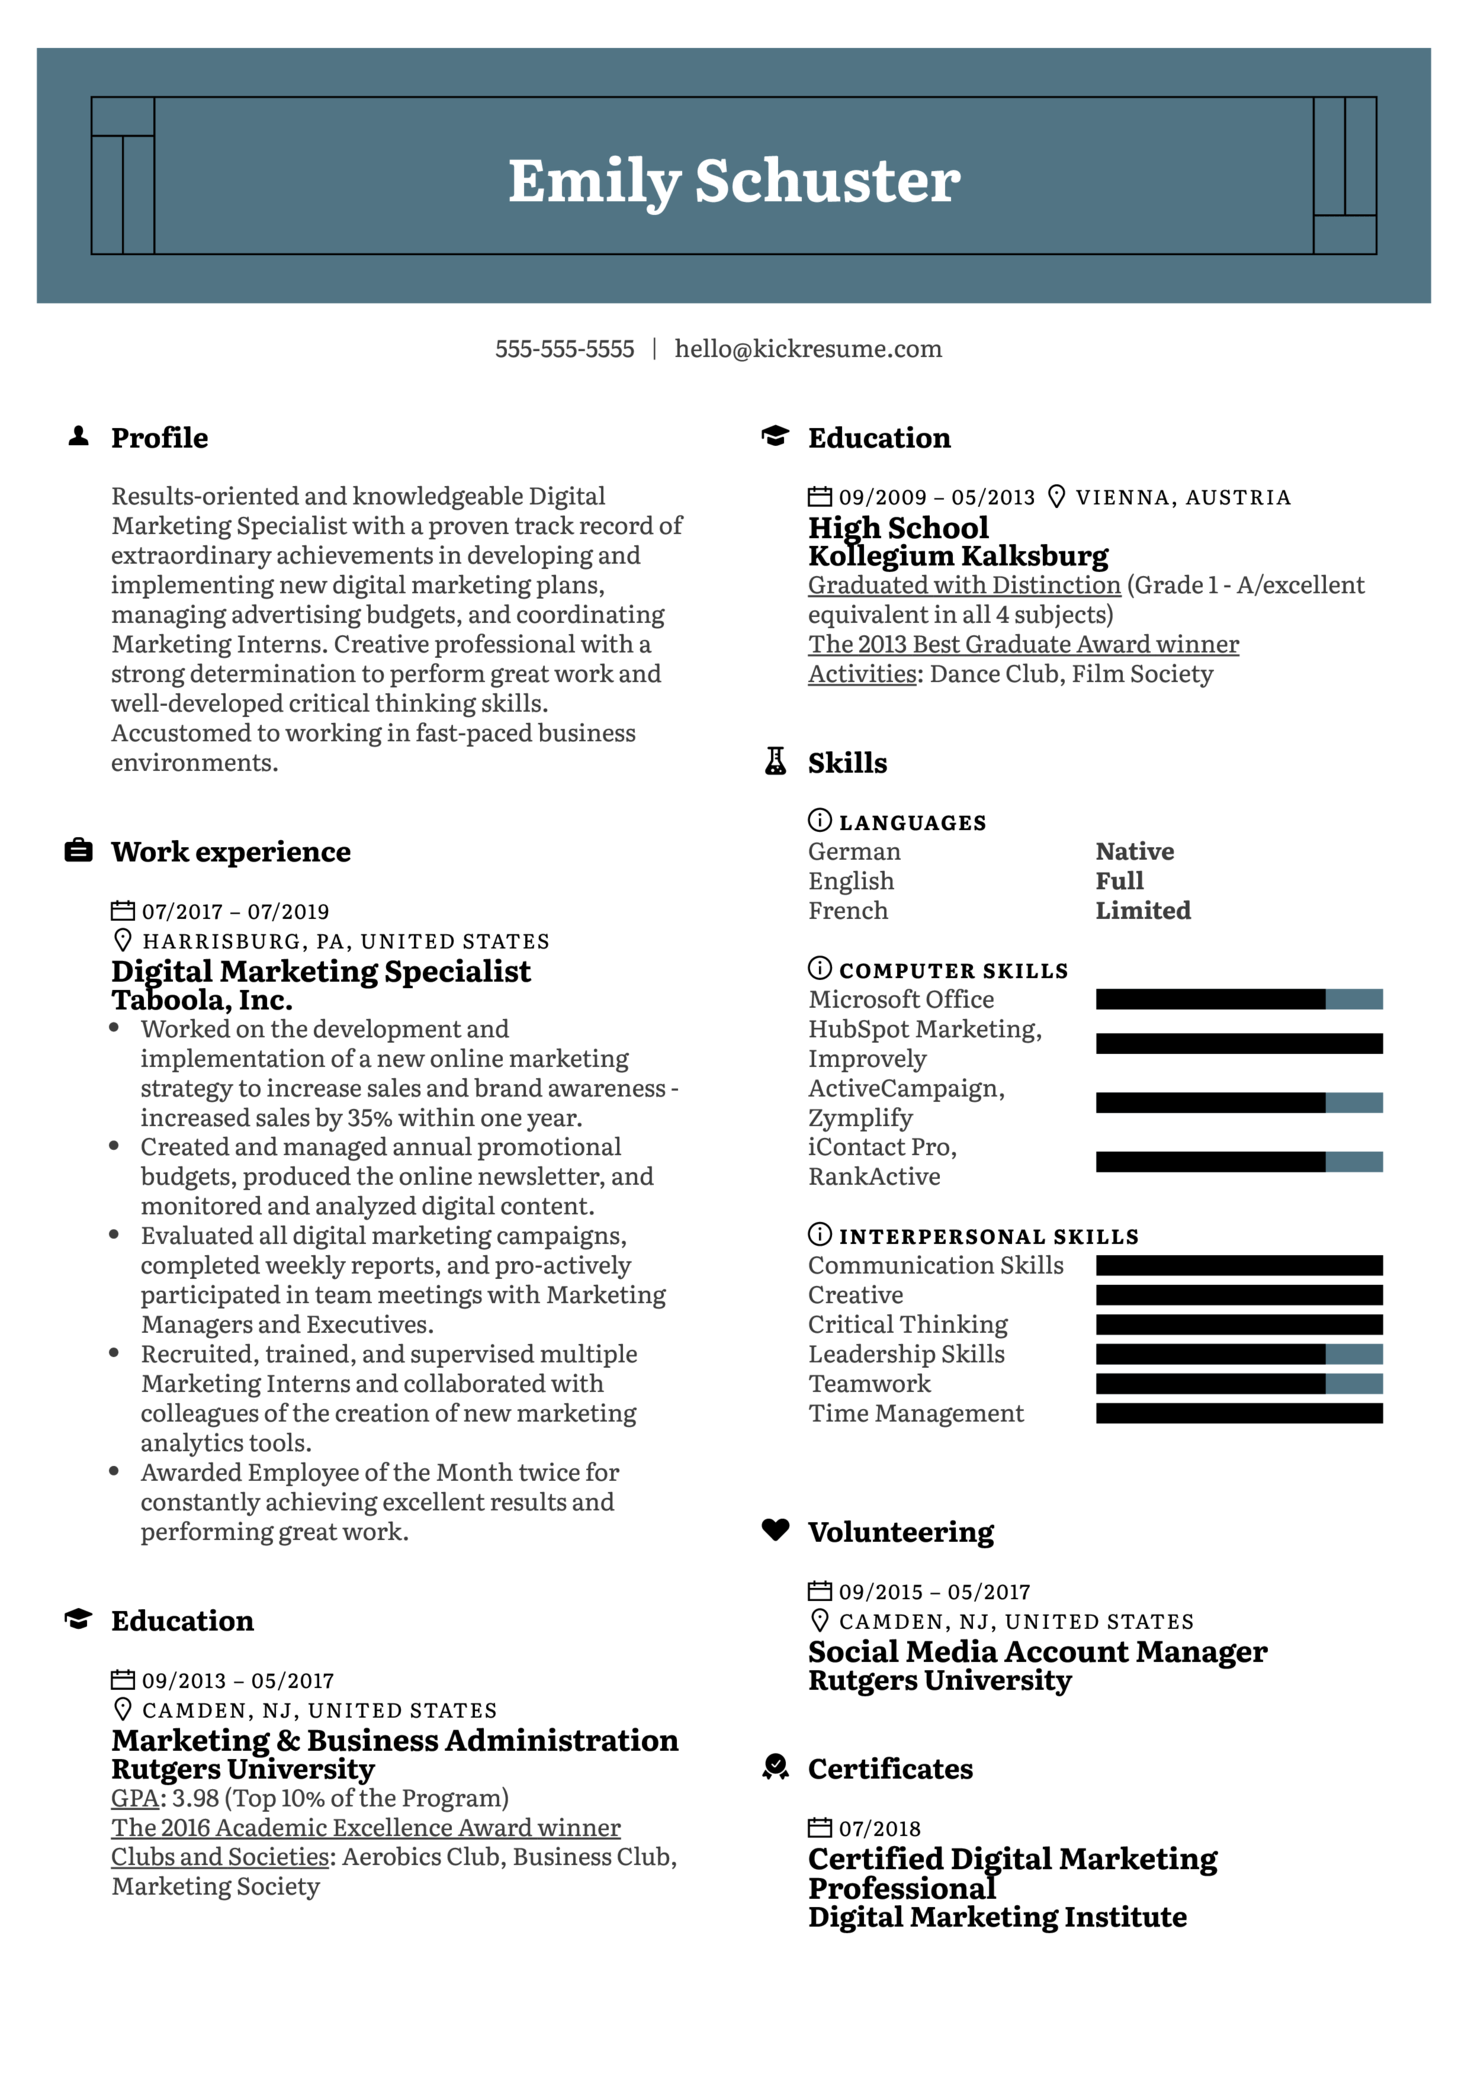 Digital Marketing Specialist Resume Sample Kickresume